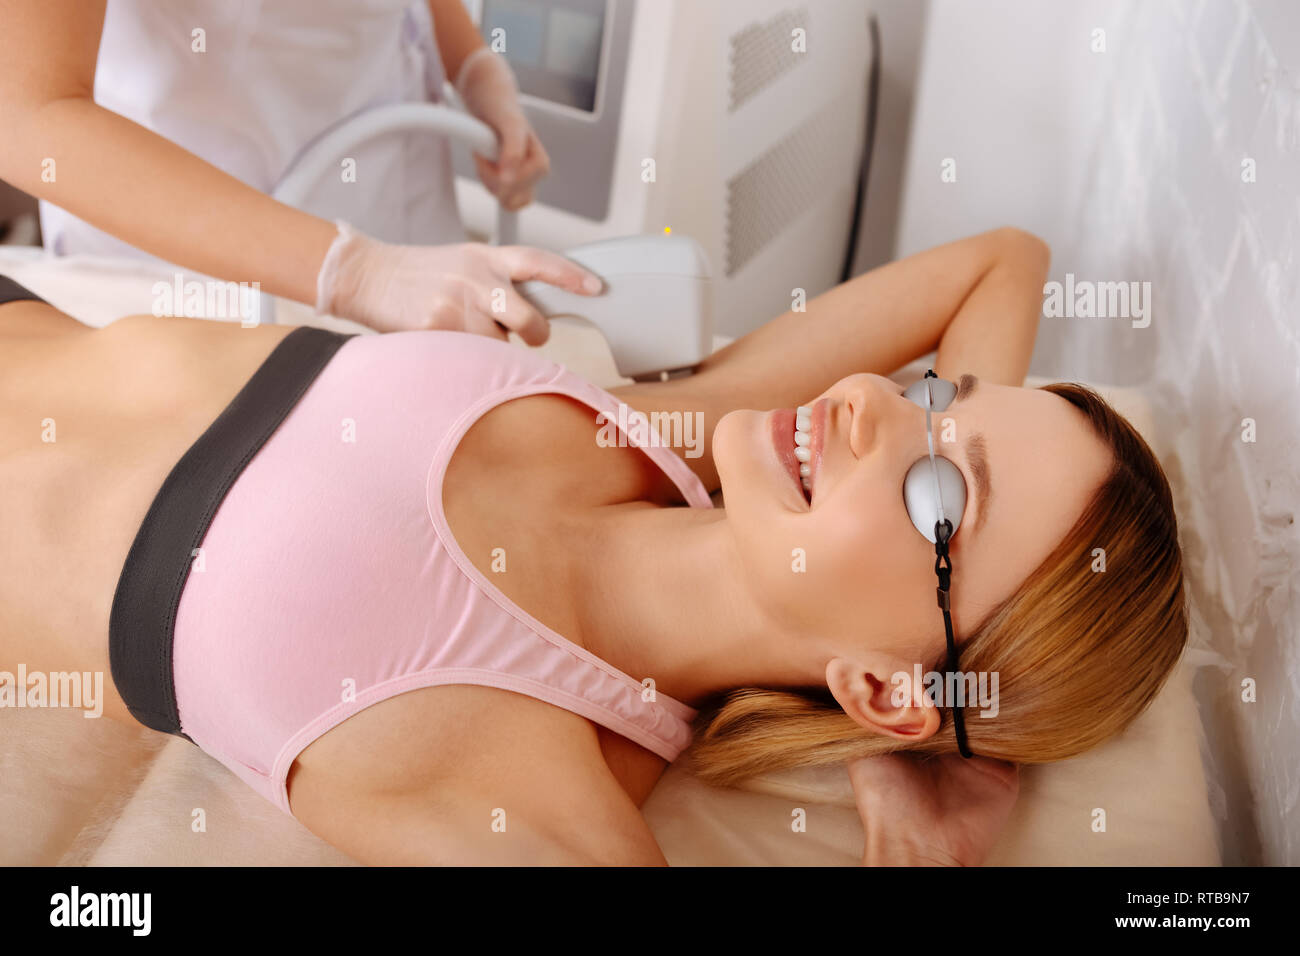 Blonde-haired woman feeling satisfied while having photo hair removal - Stock Image